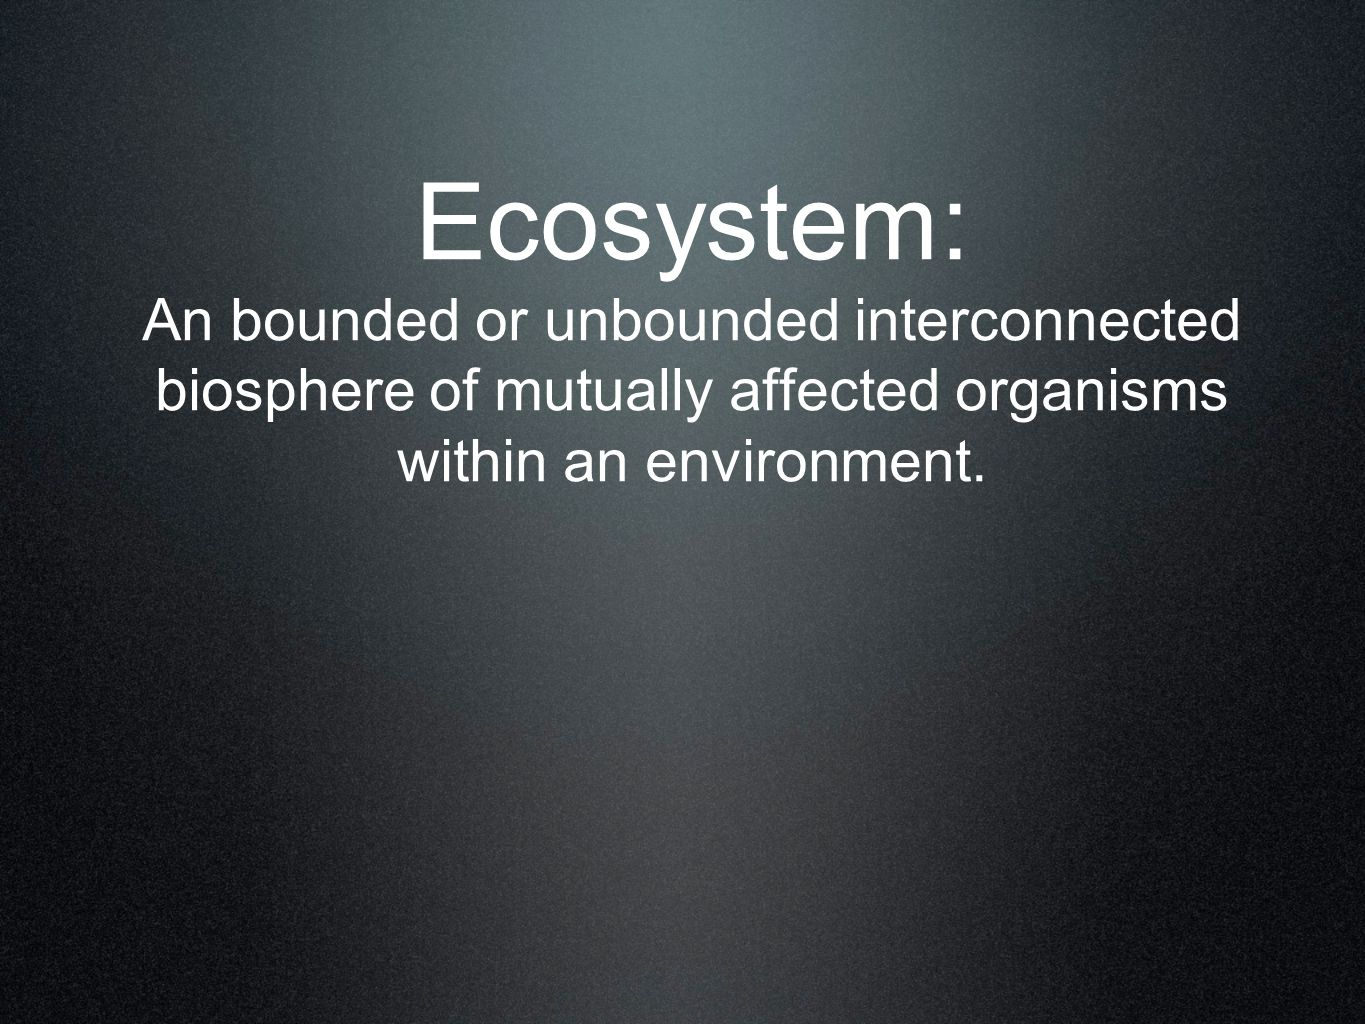 Ecosystem: An bounded or unbounded interconnected biosphere of mutually affected organisms within an environment.